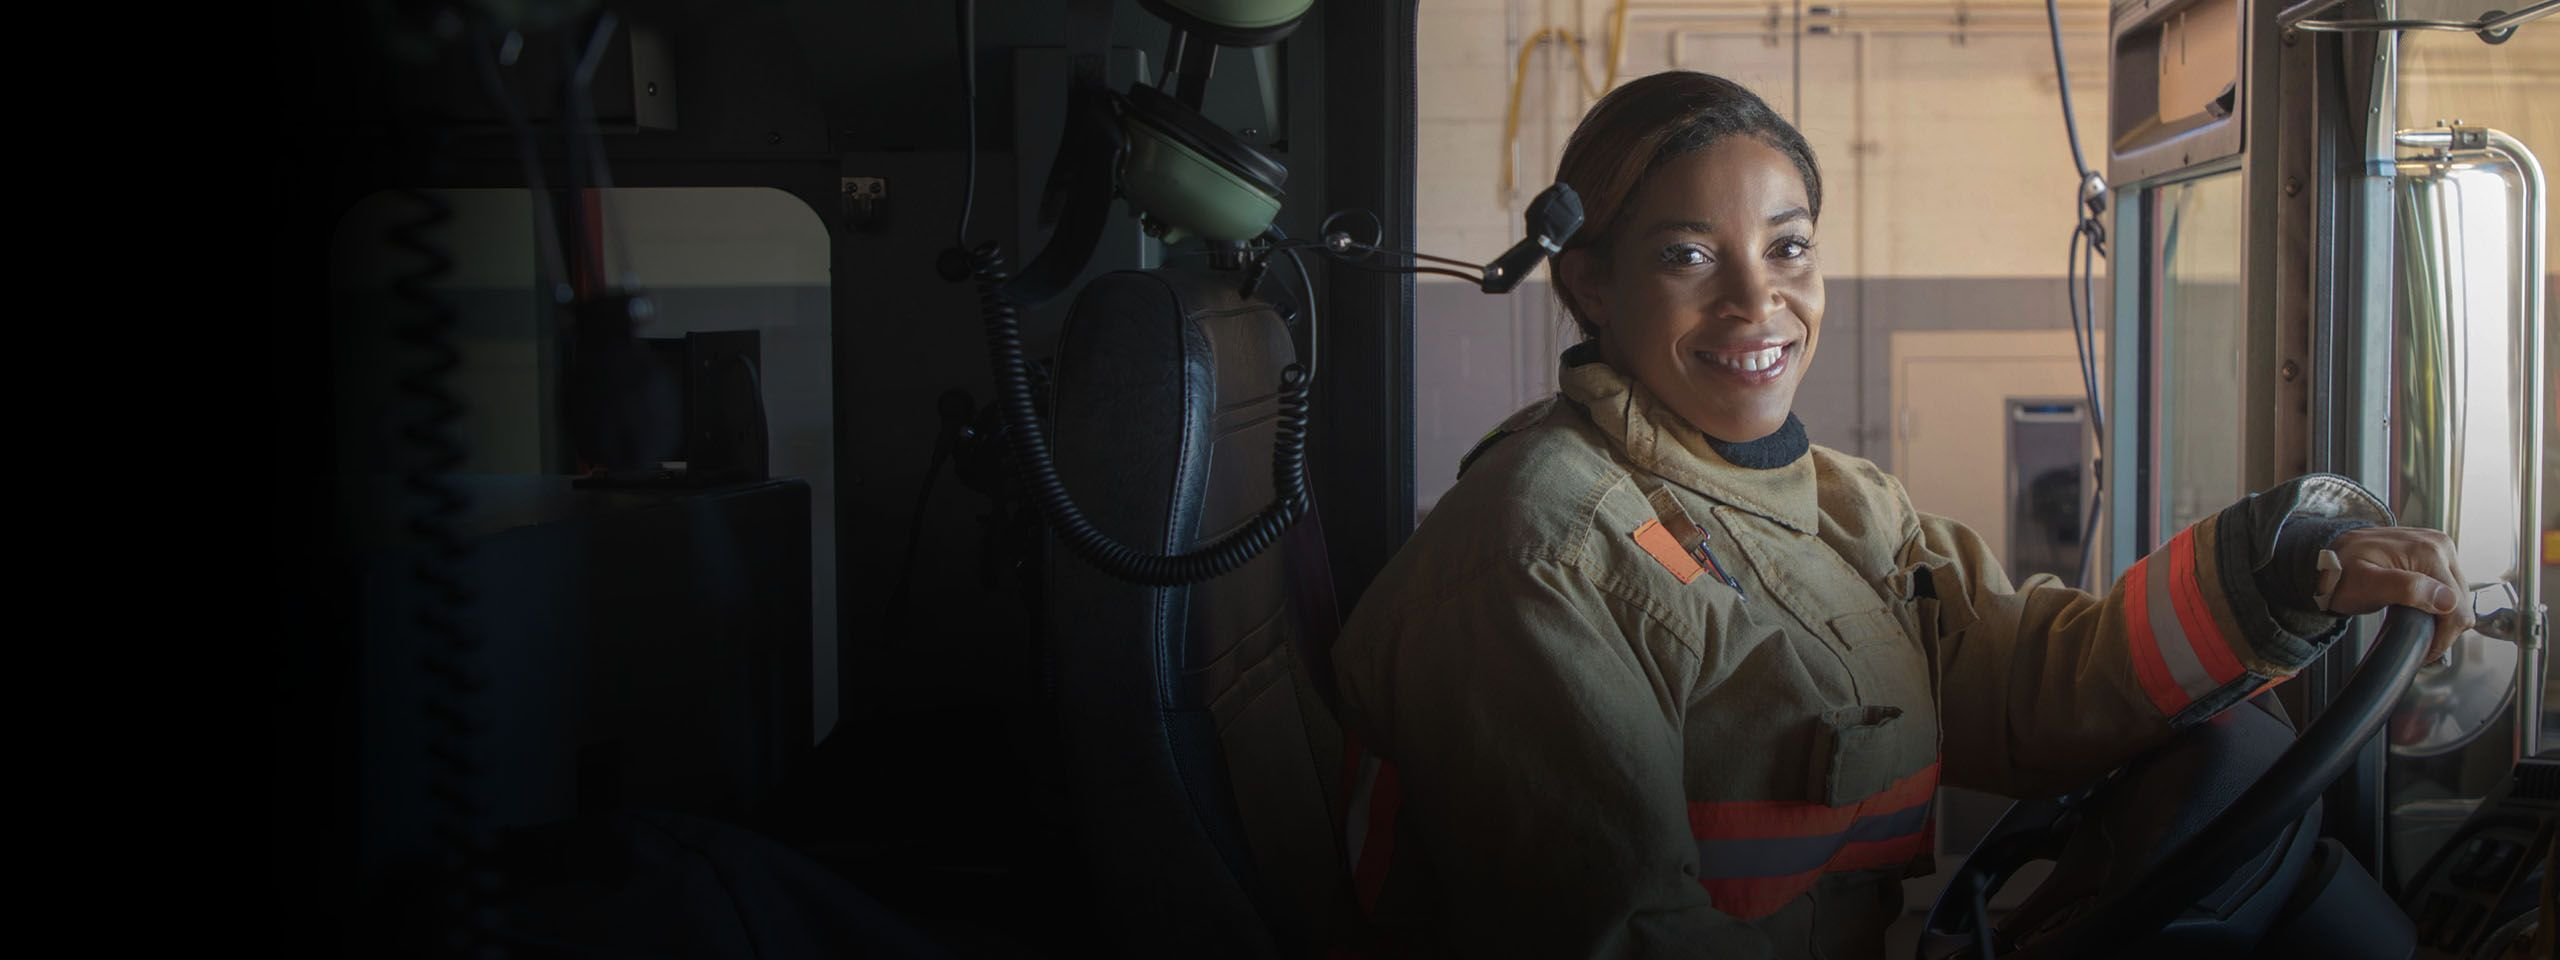 Firefighter smiles as she sits in the fire engine cab with her hand on the wheel.